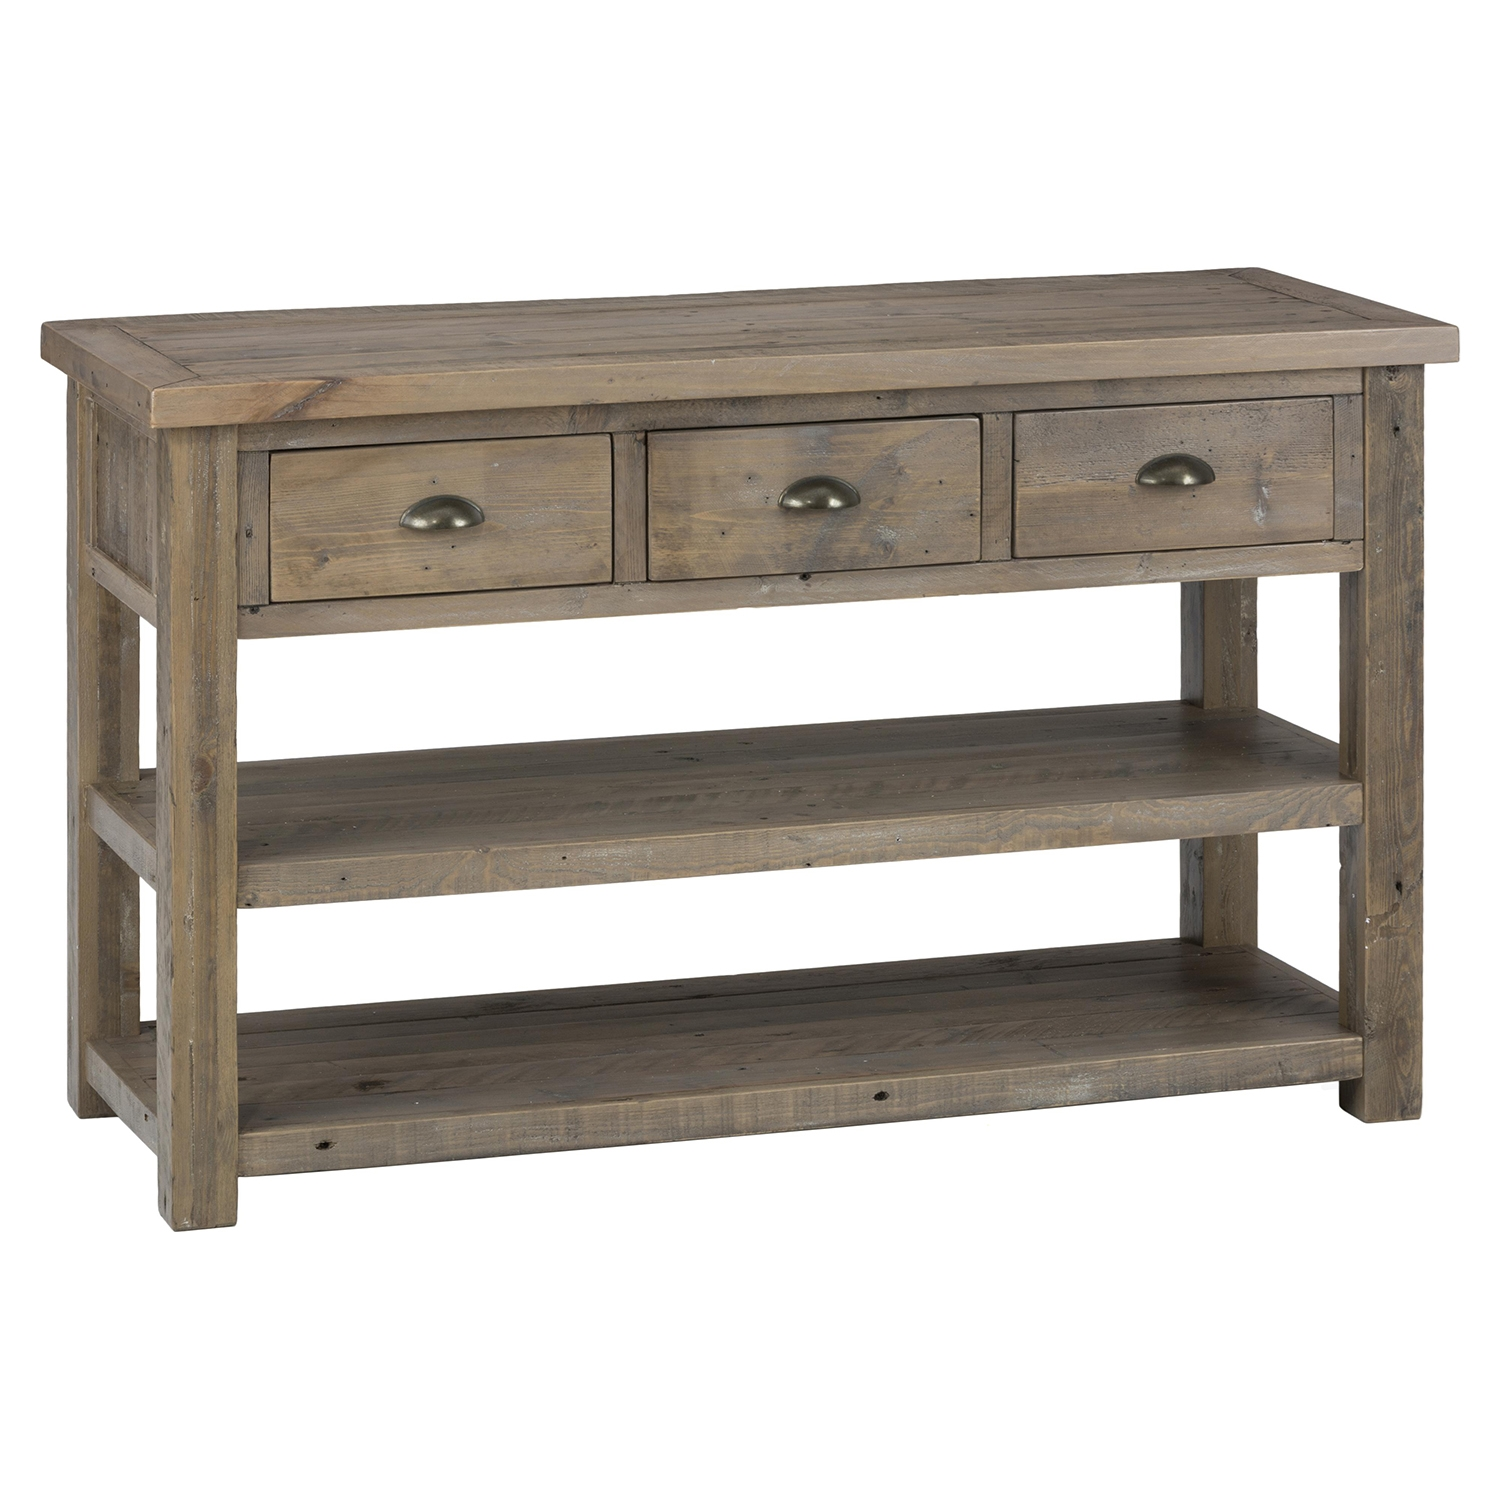 Slater Mill Sofa Table - Brown - JOFR-940-4